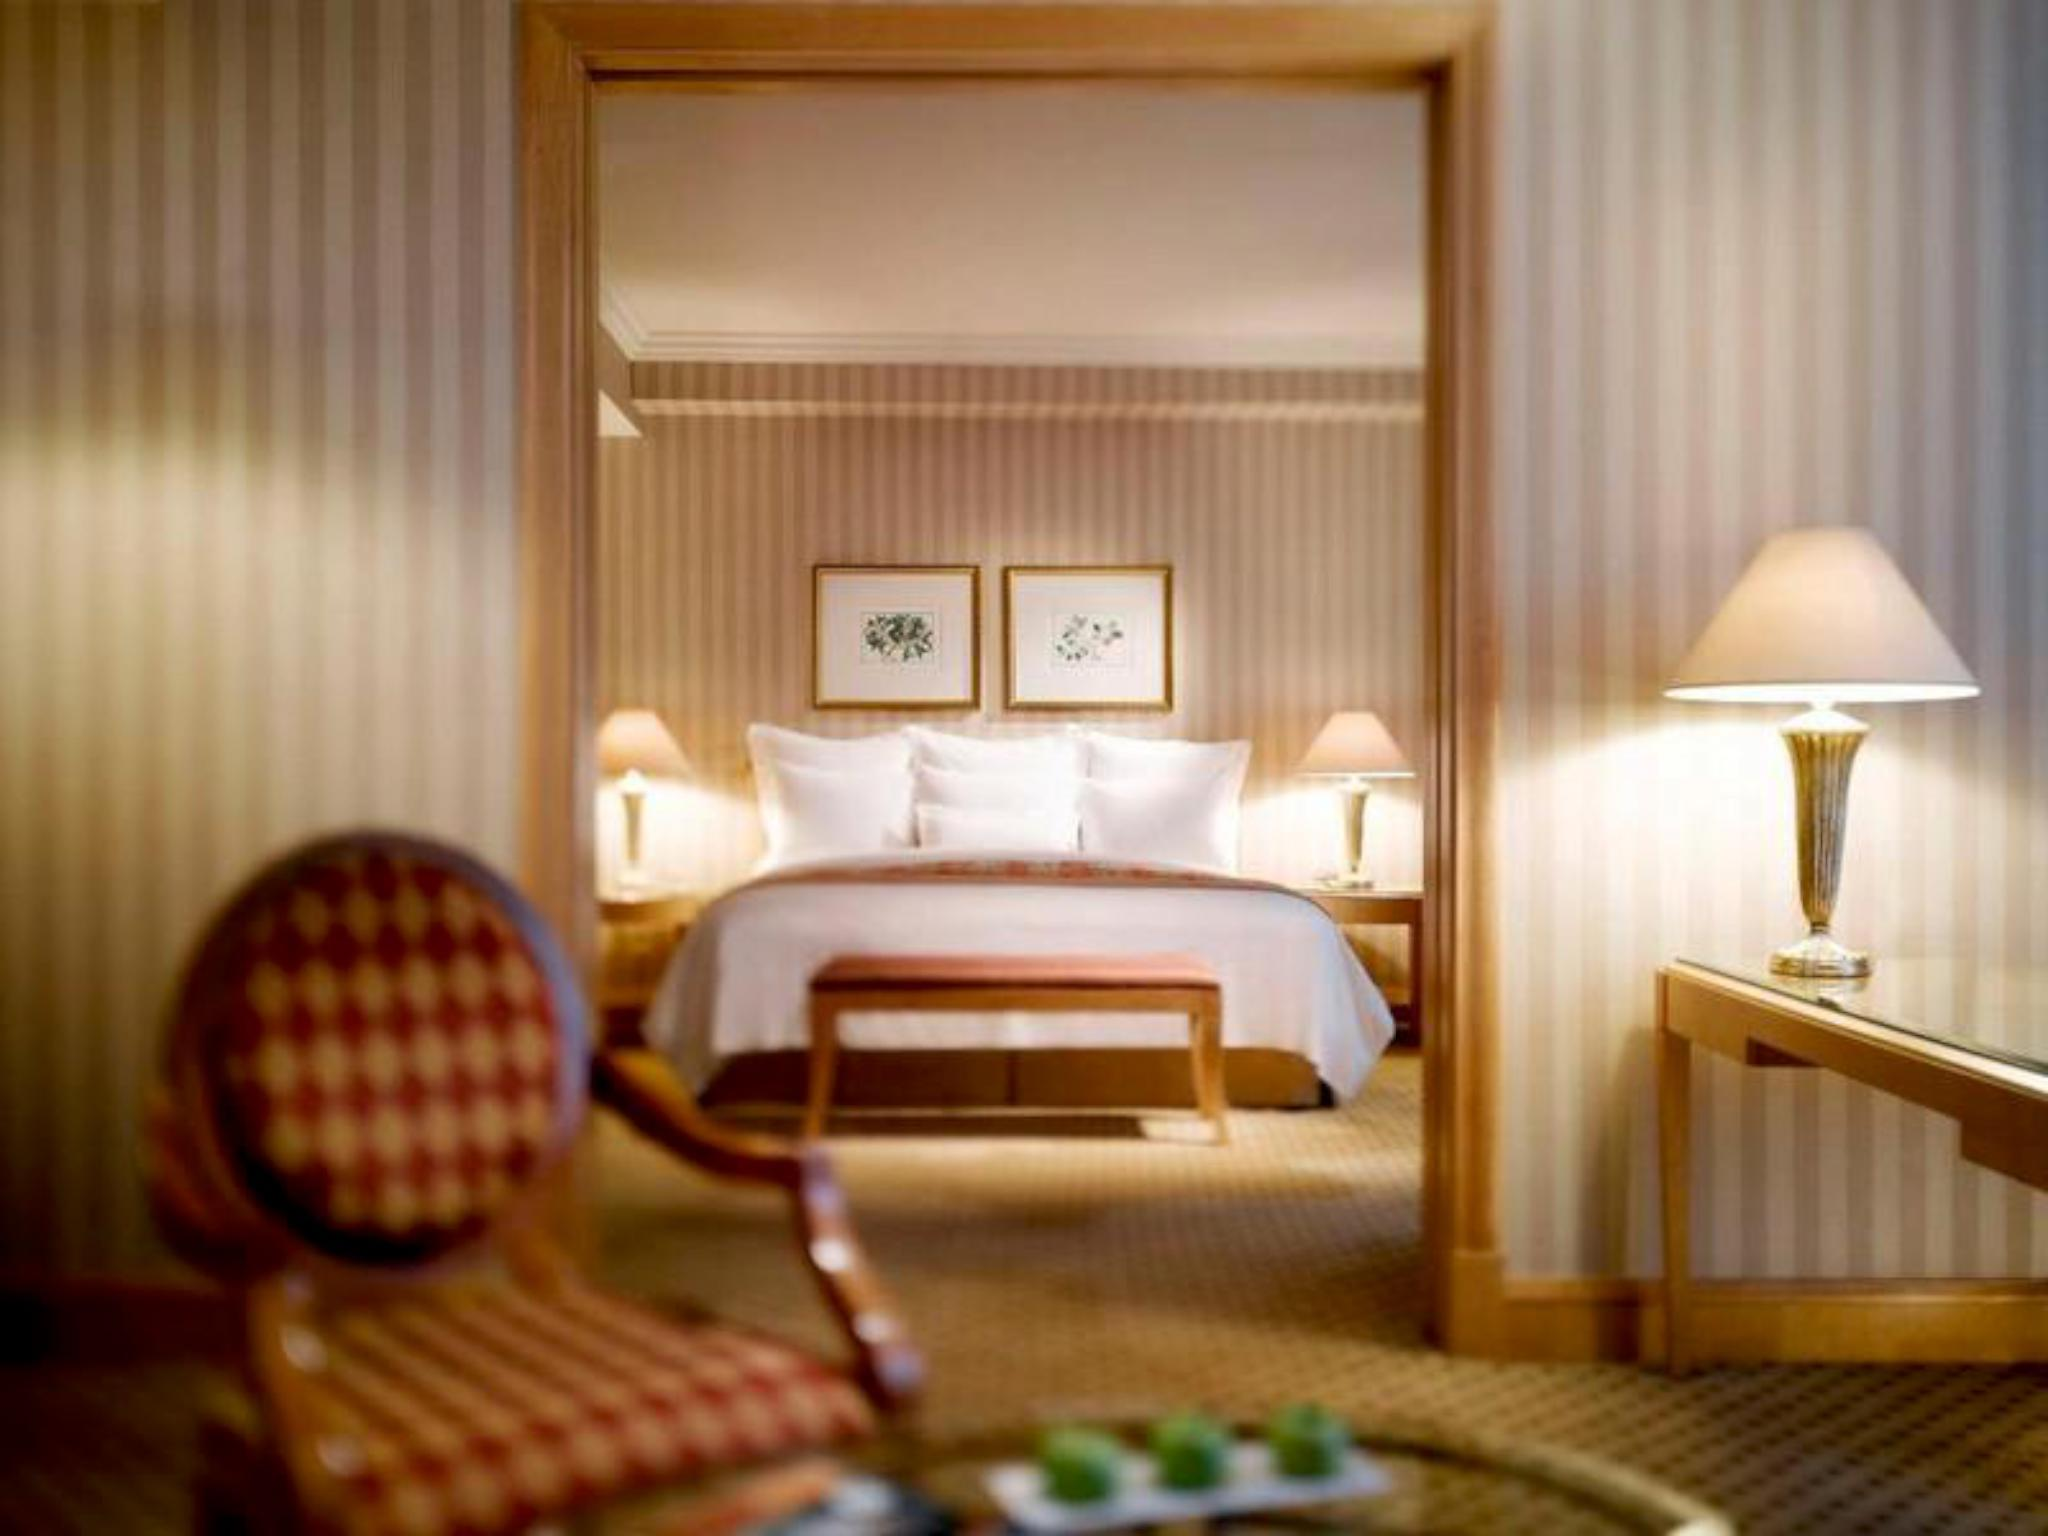 JW Marriott Suite, 148Sqm, Executive lounge access, 1 King